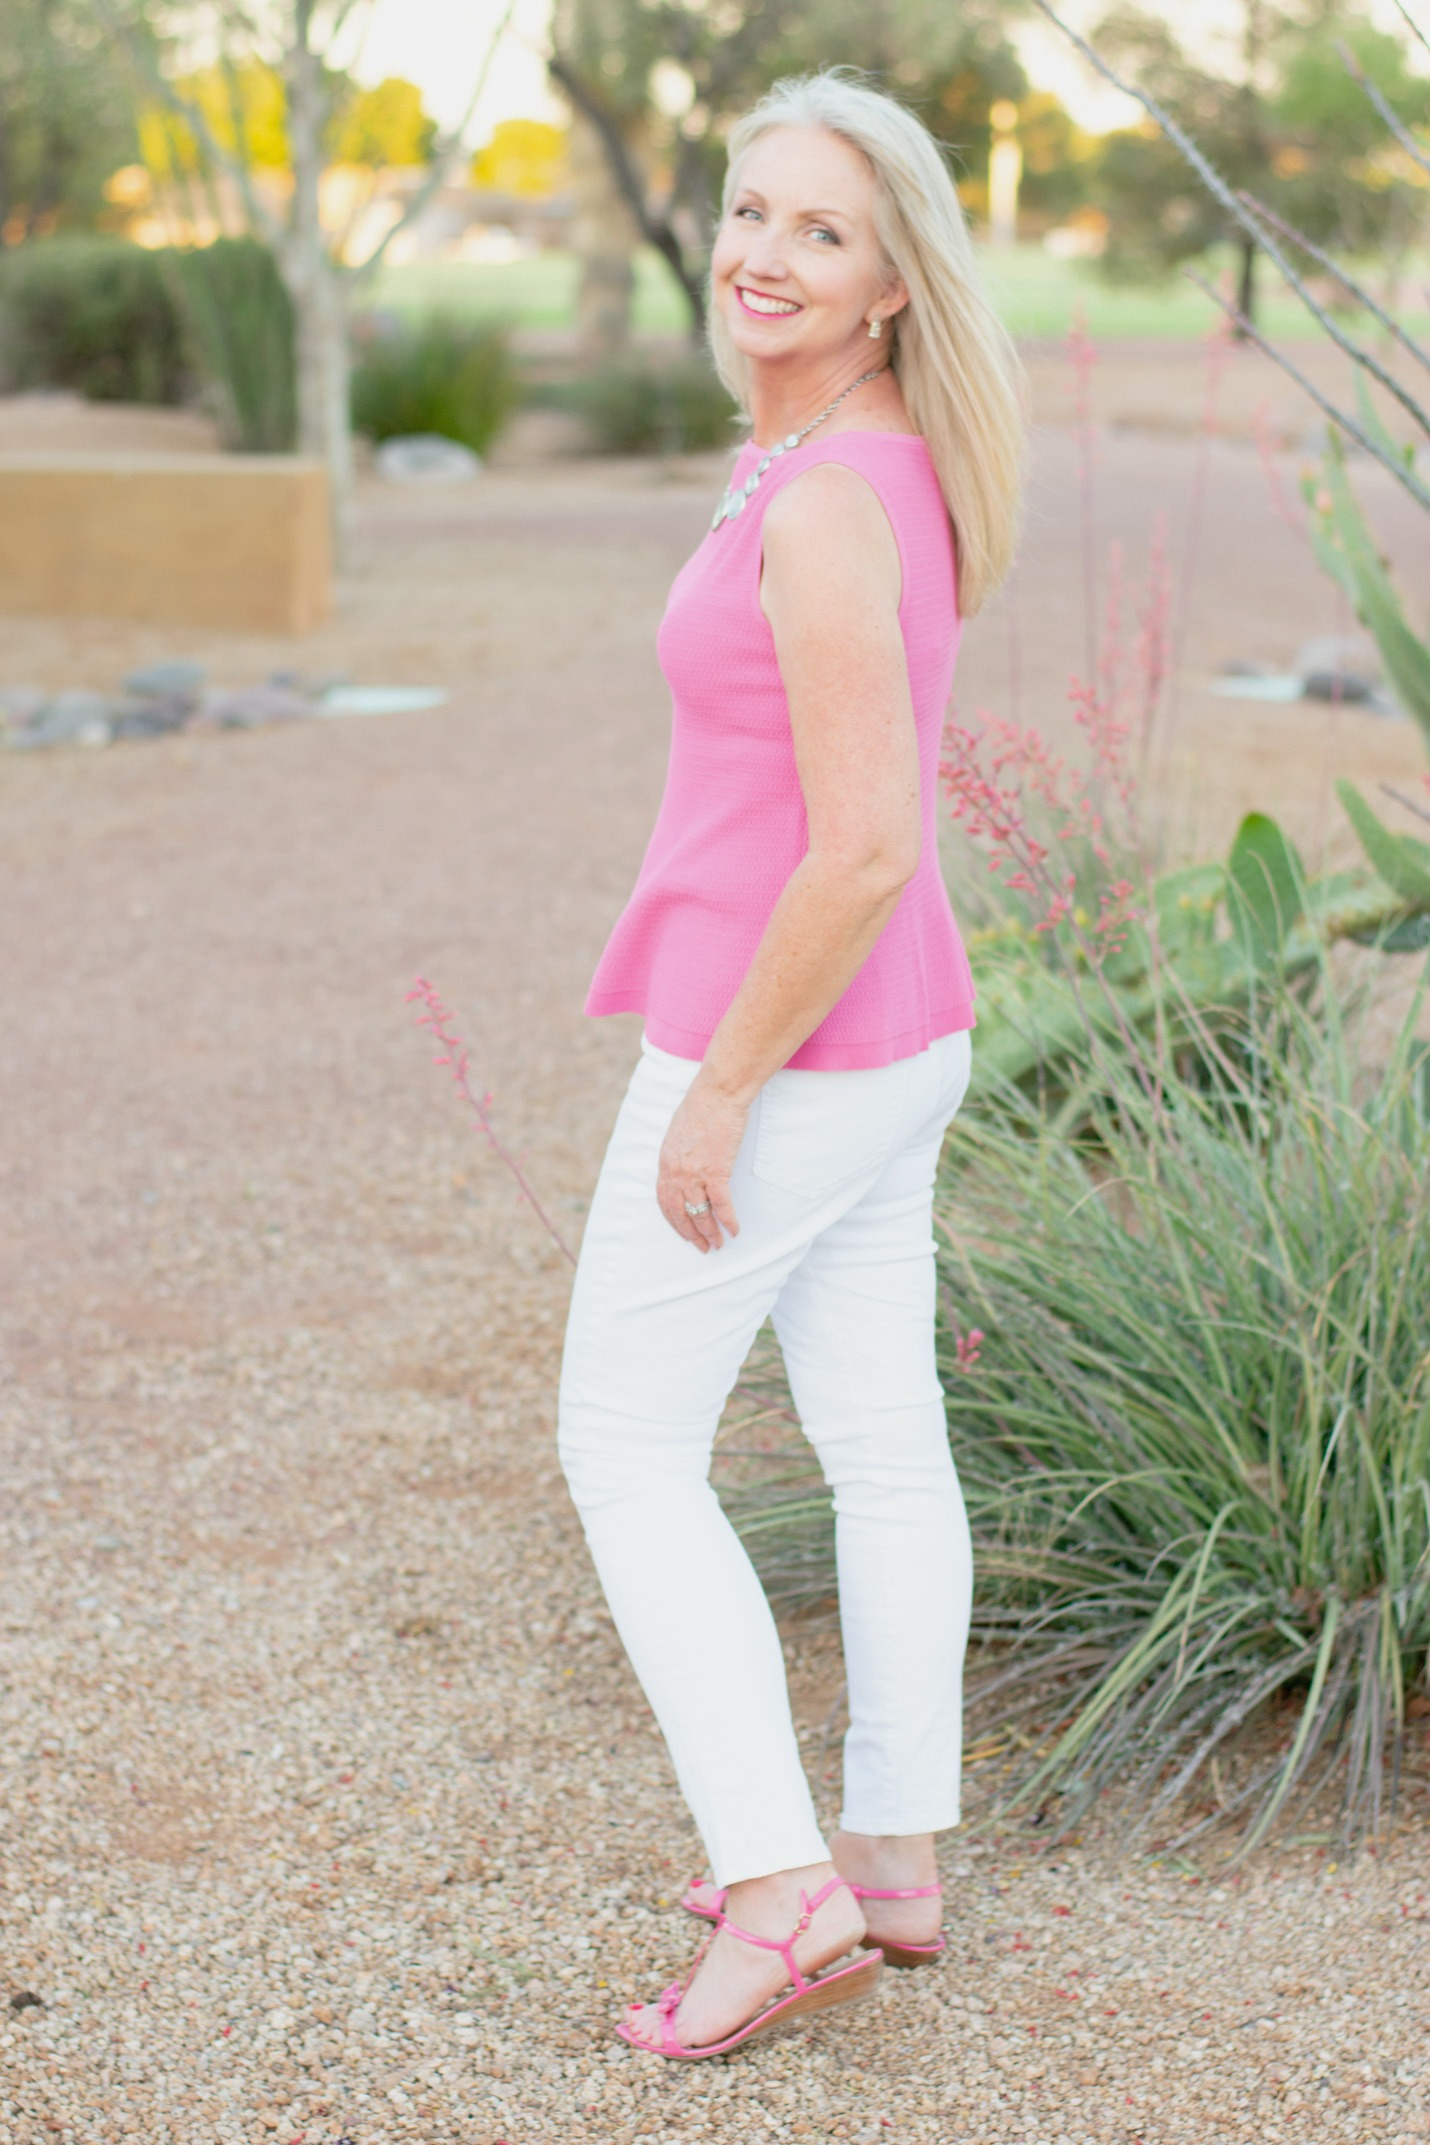 White skinny jeans with pink sleeveless top